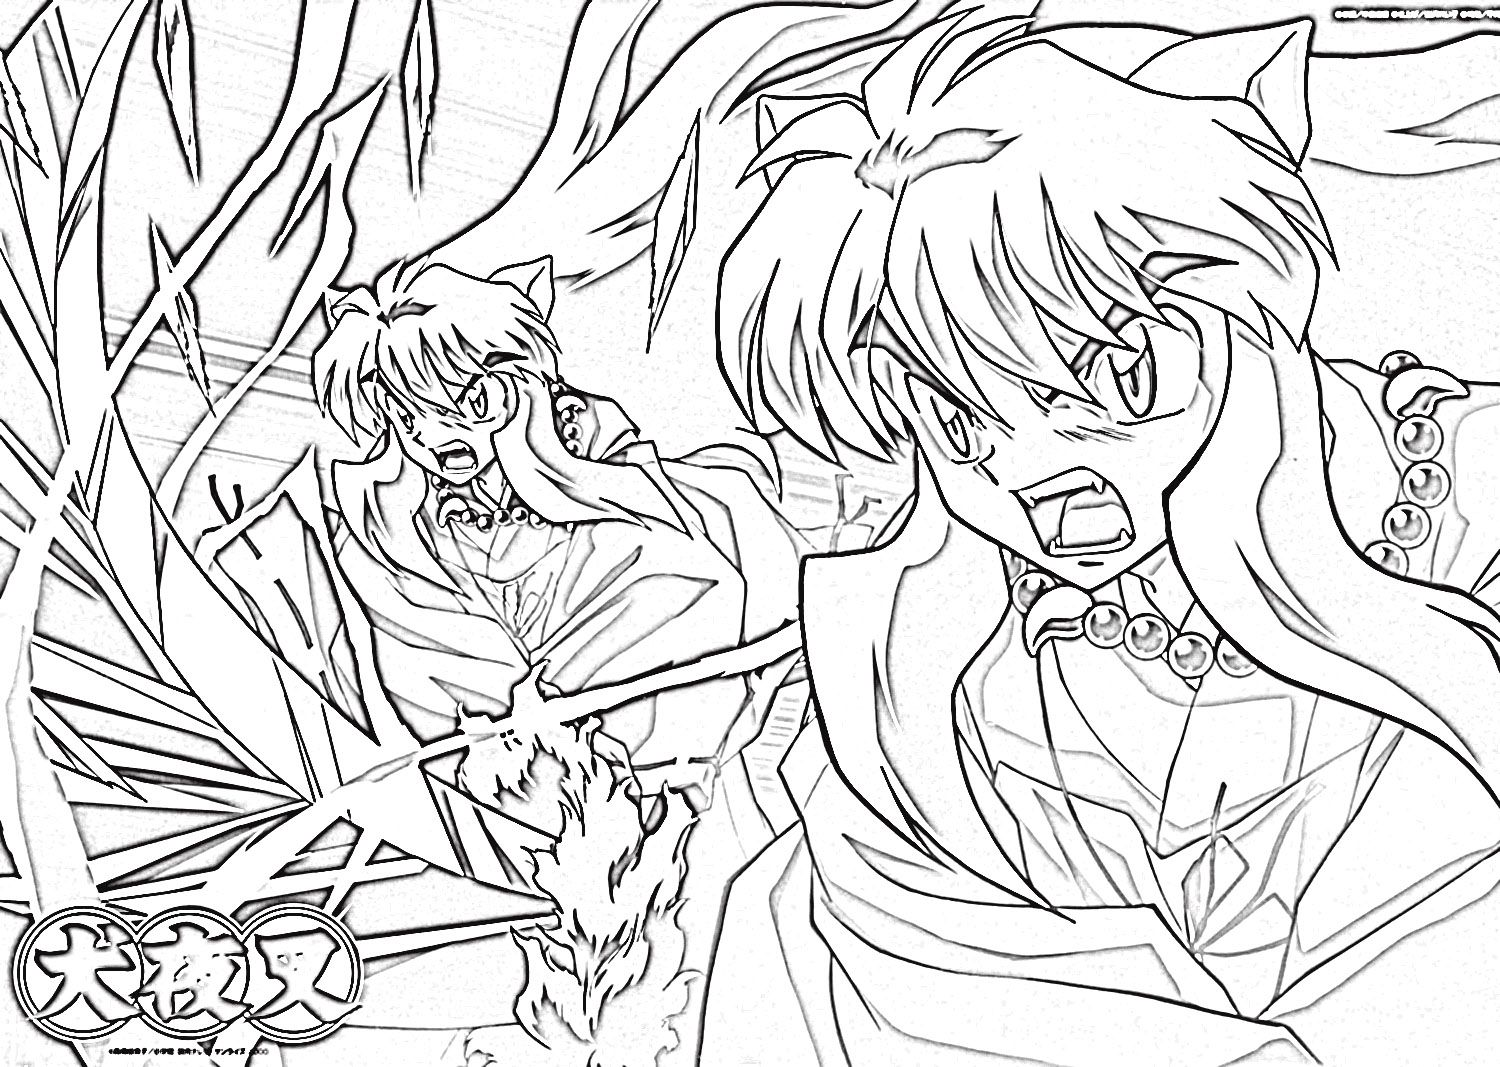 Inuyasha Coloring Pages 3 Cartoon Coloring Pages Coloring Books Cute Coloring Pages